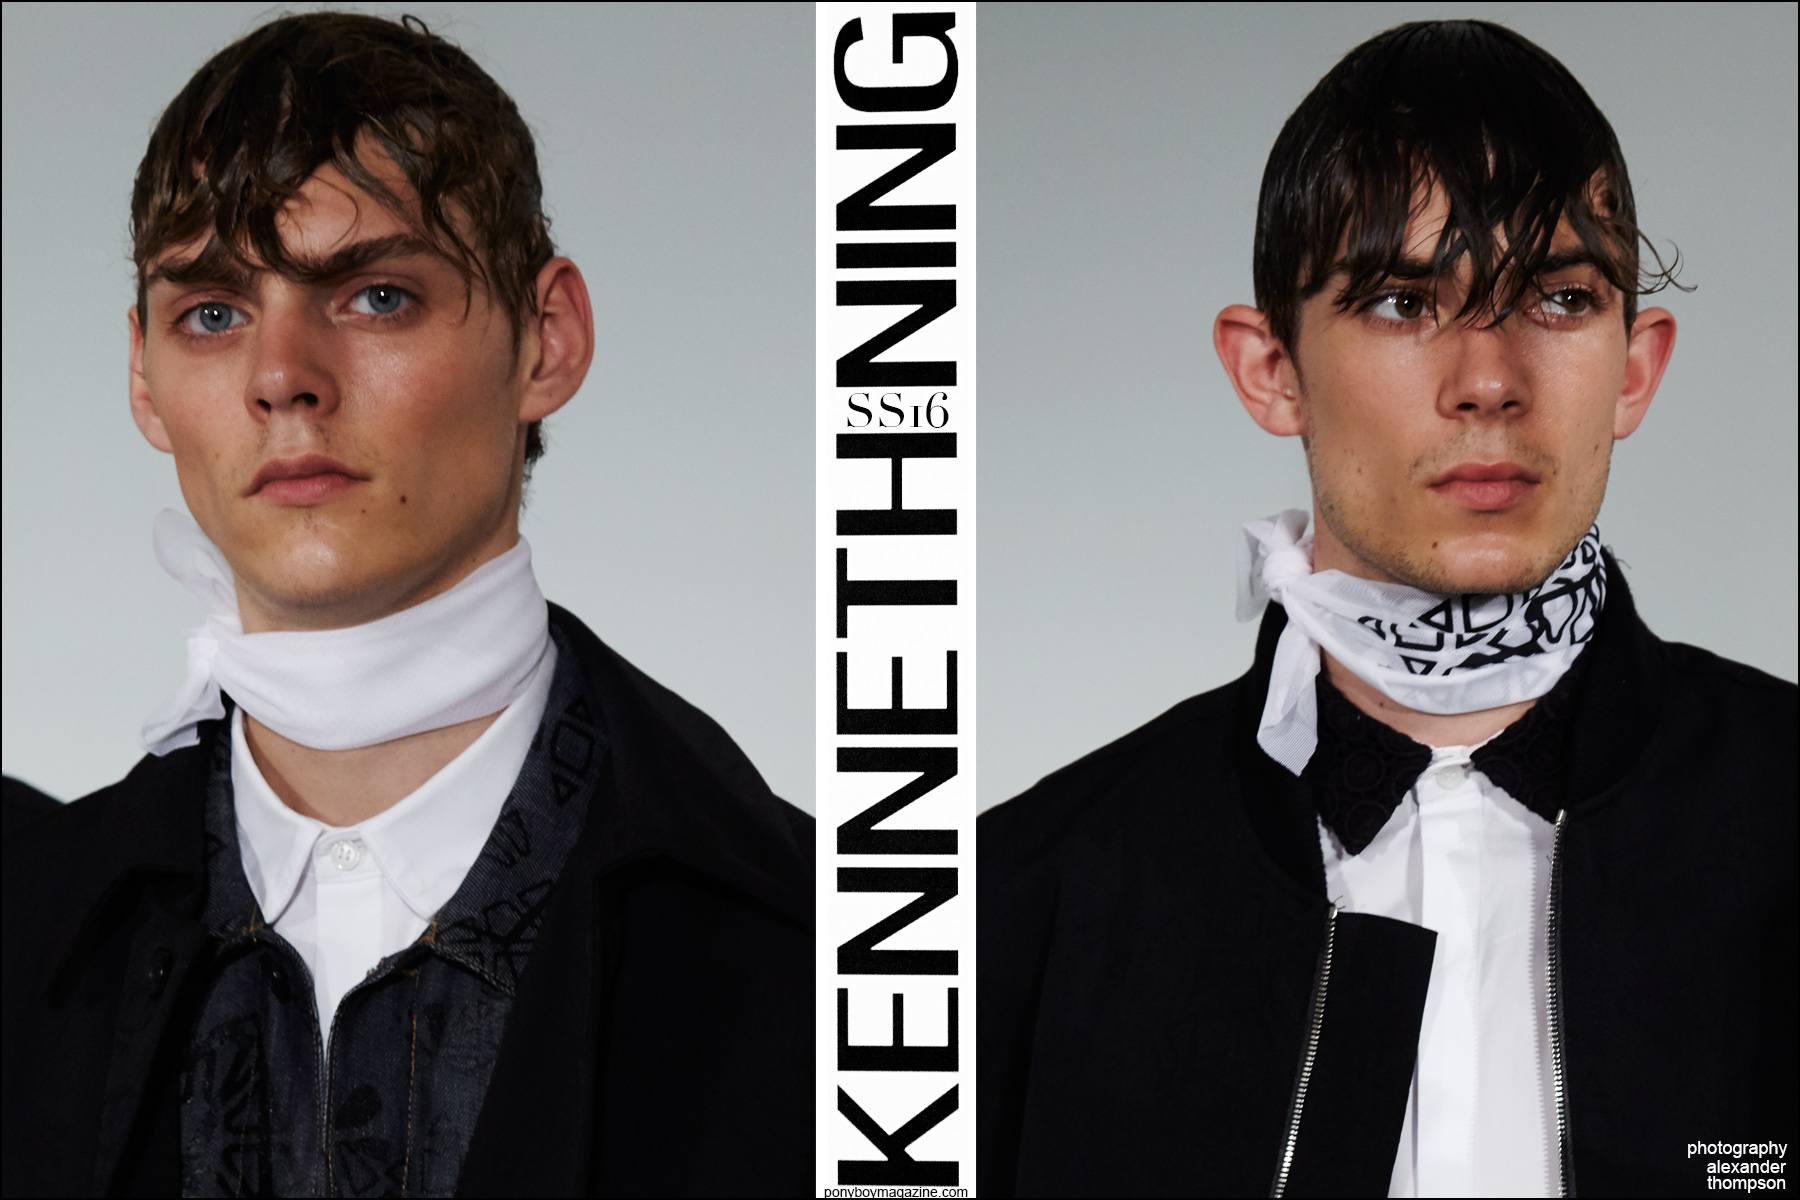 Male model Mats Van Snippenberg photographed at Kenneth Ning Spring/Summer 2016 menswear presentation at Industria Studios New York. Photographed by Alexander Thompson for Ponyboy magazine NY.